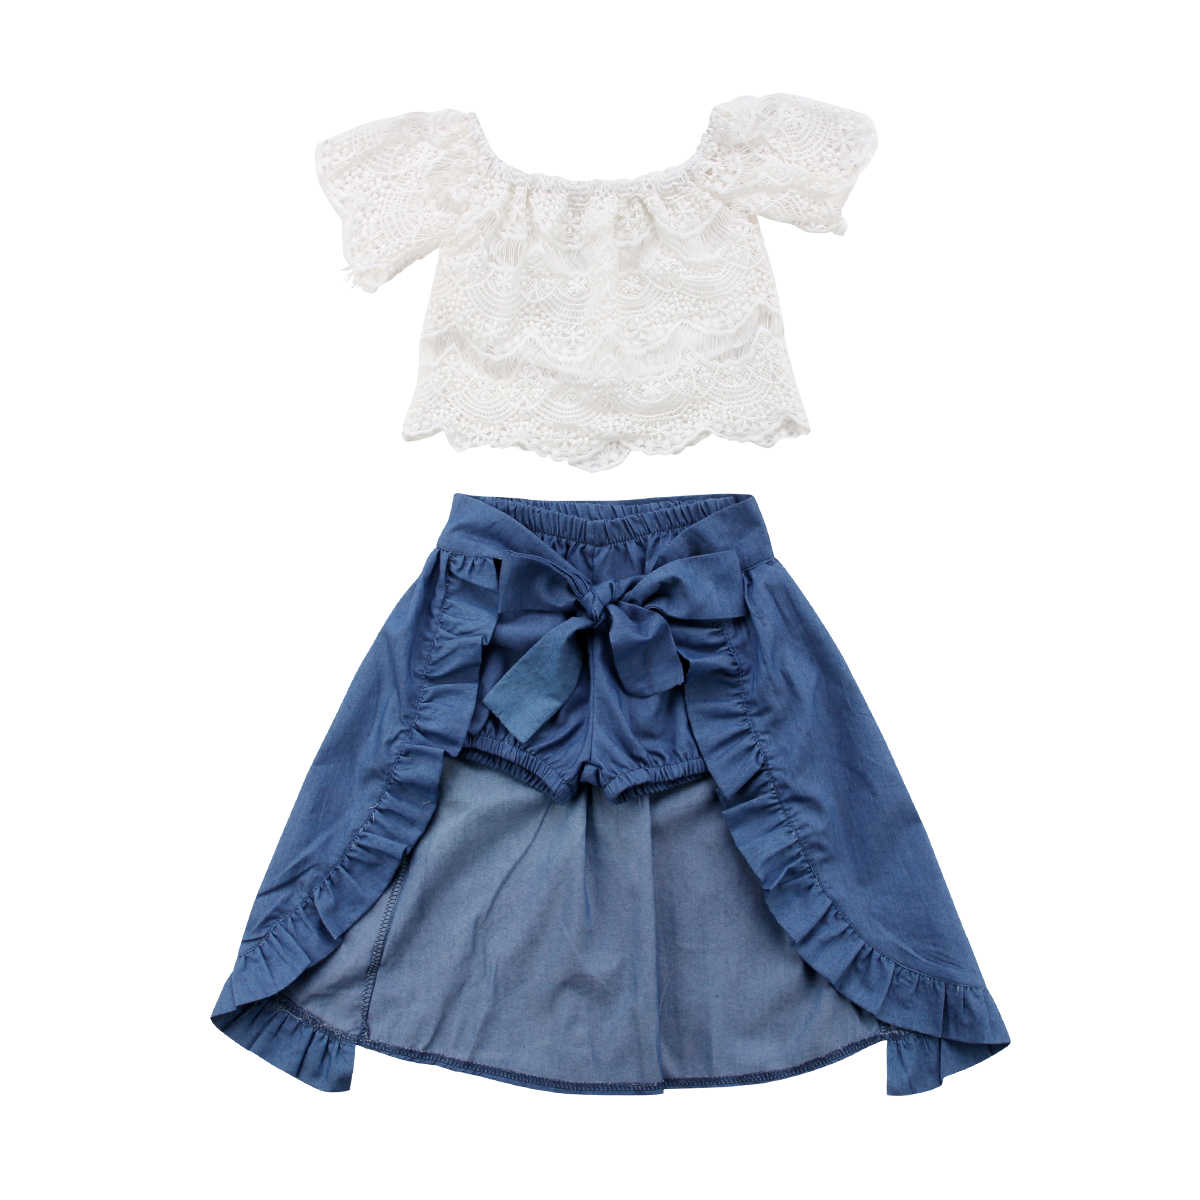 8e4a9794bc0d2 Toddler Children Baby Girl Clothes Set Summer Off-shoulder Lace Tops Denim  Jeans Bow Shorts